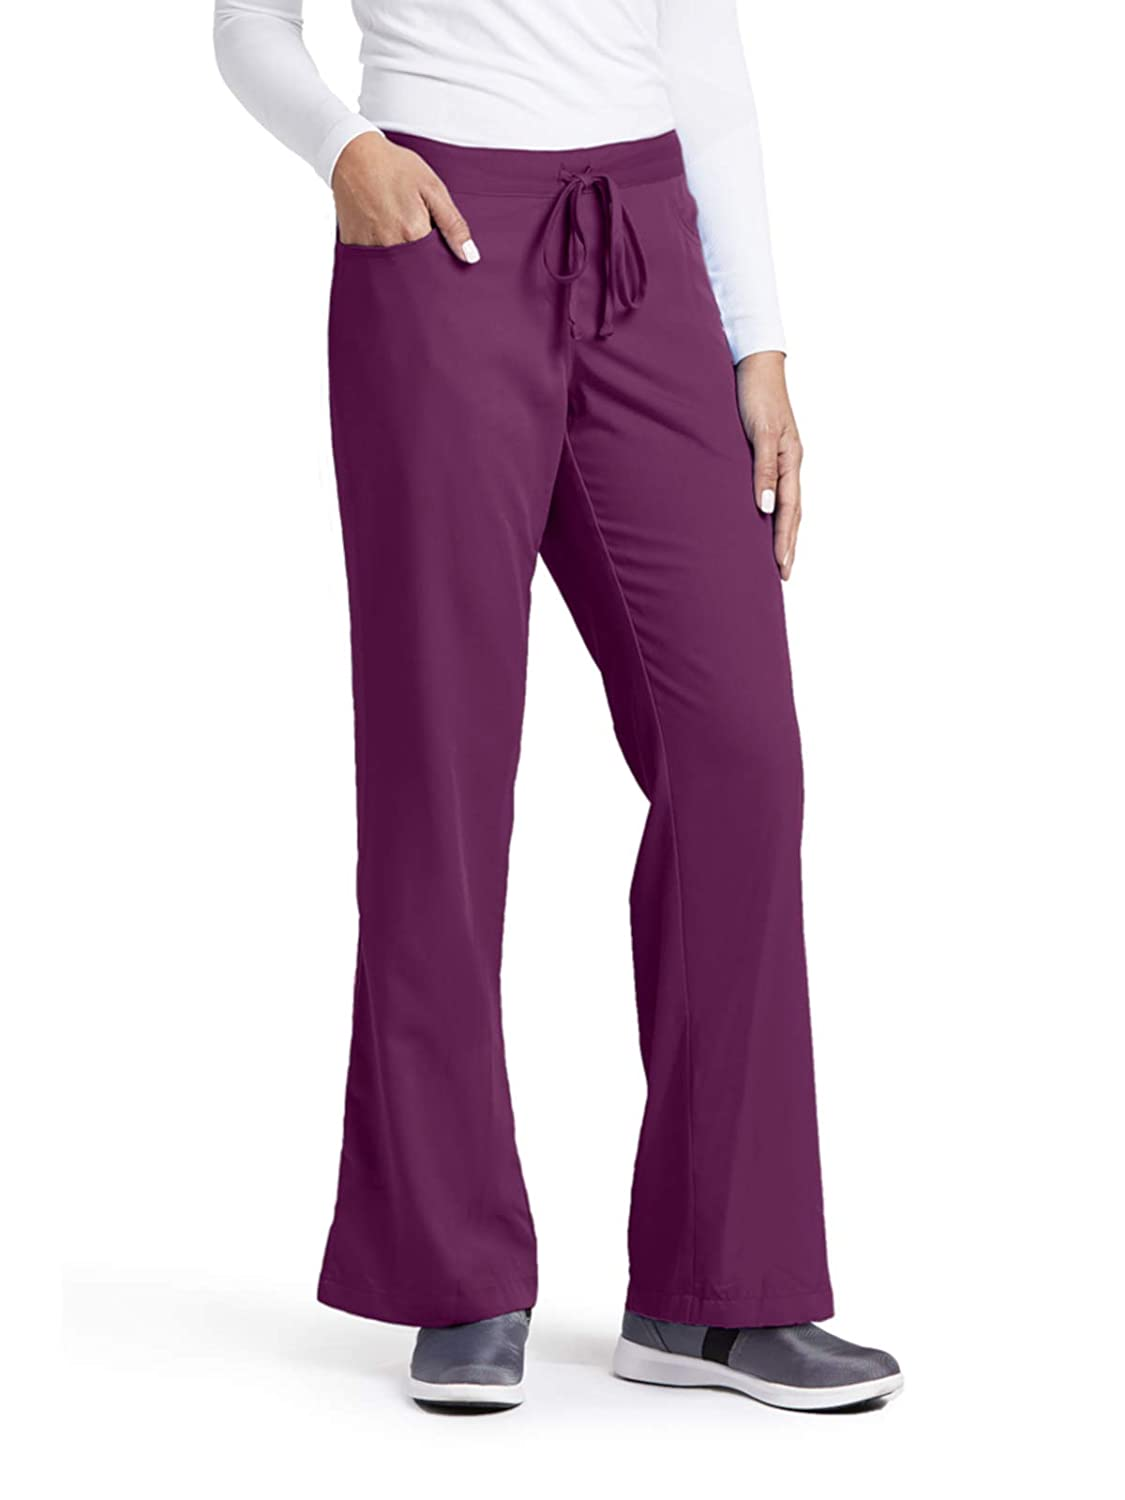 Grey's Anatomy Women's 4232 Drawstring Scrub Pant